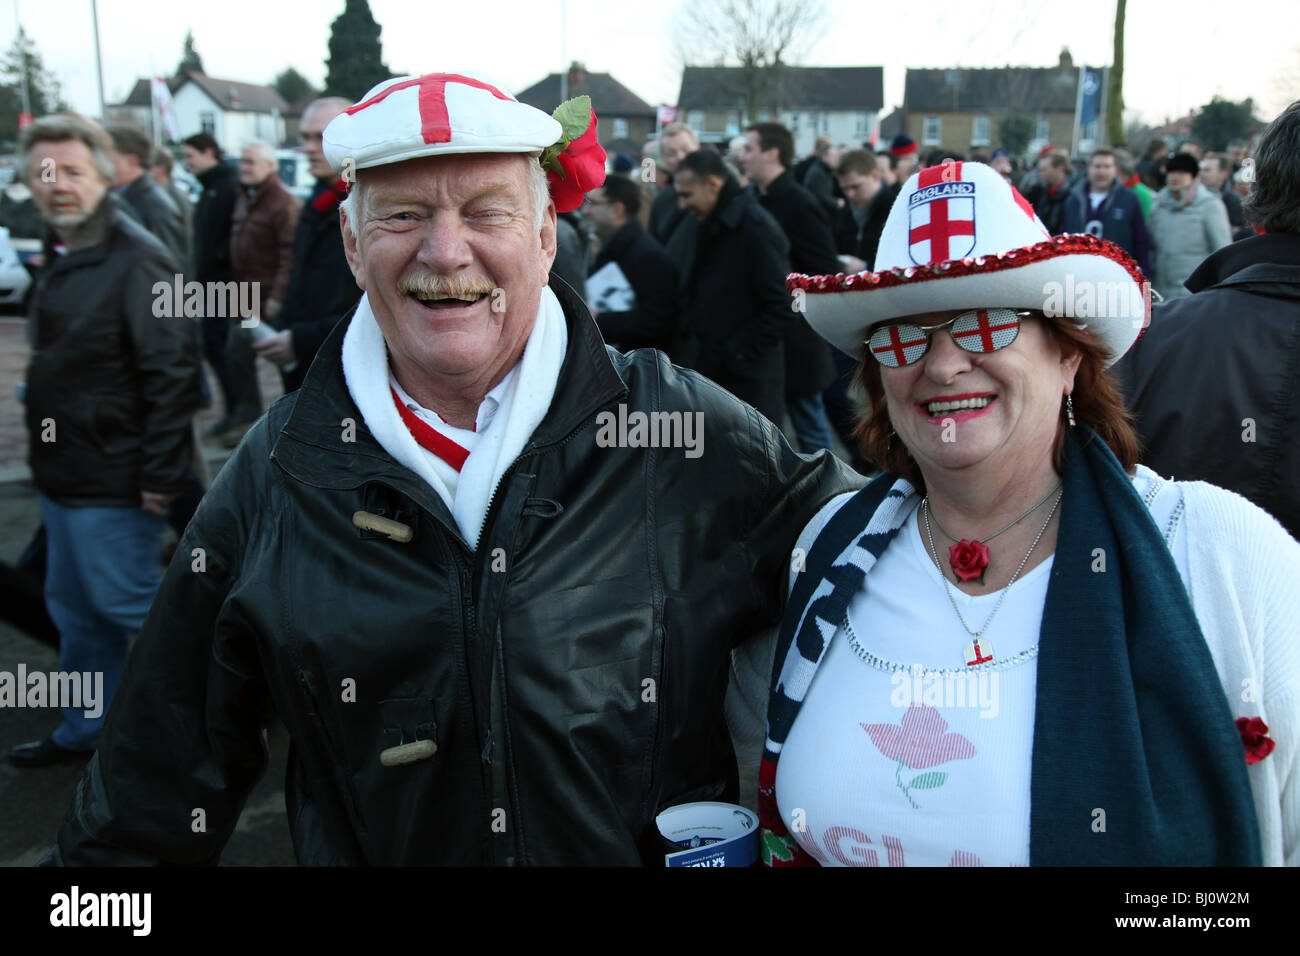 English rugby supporters at Twickenham for Enland v Wales 2010 - Stock Image